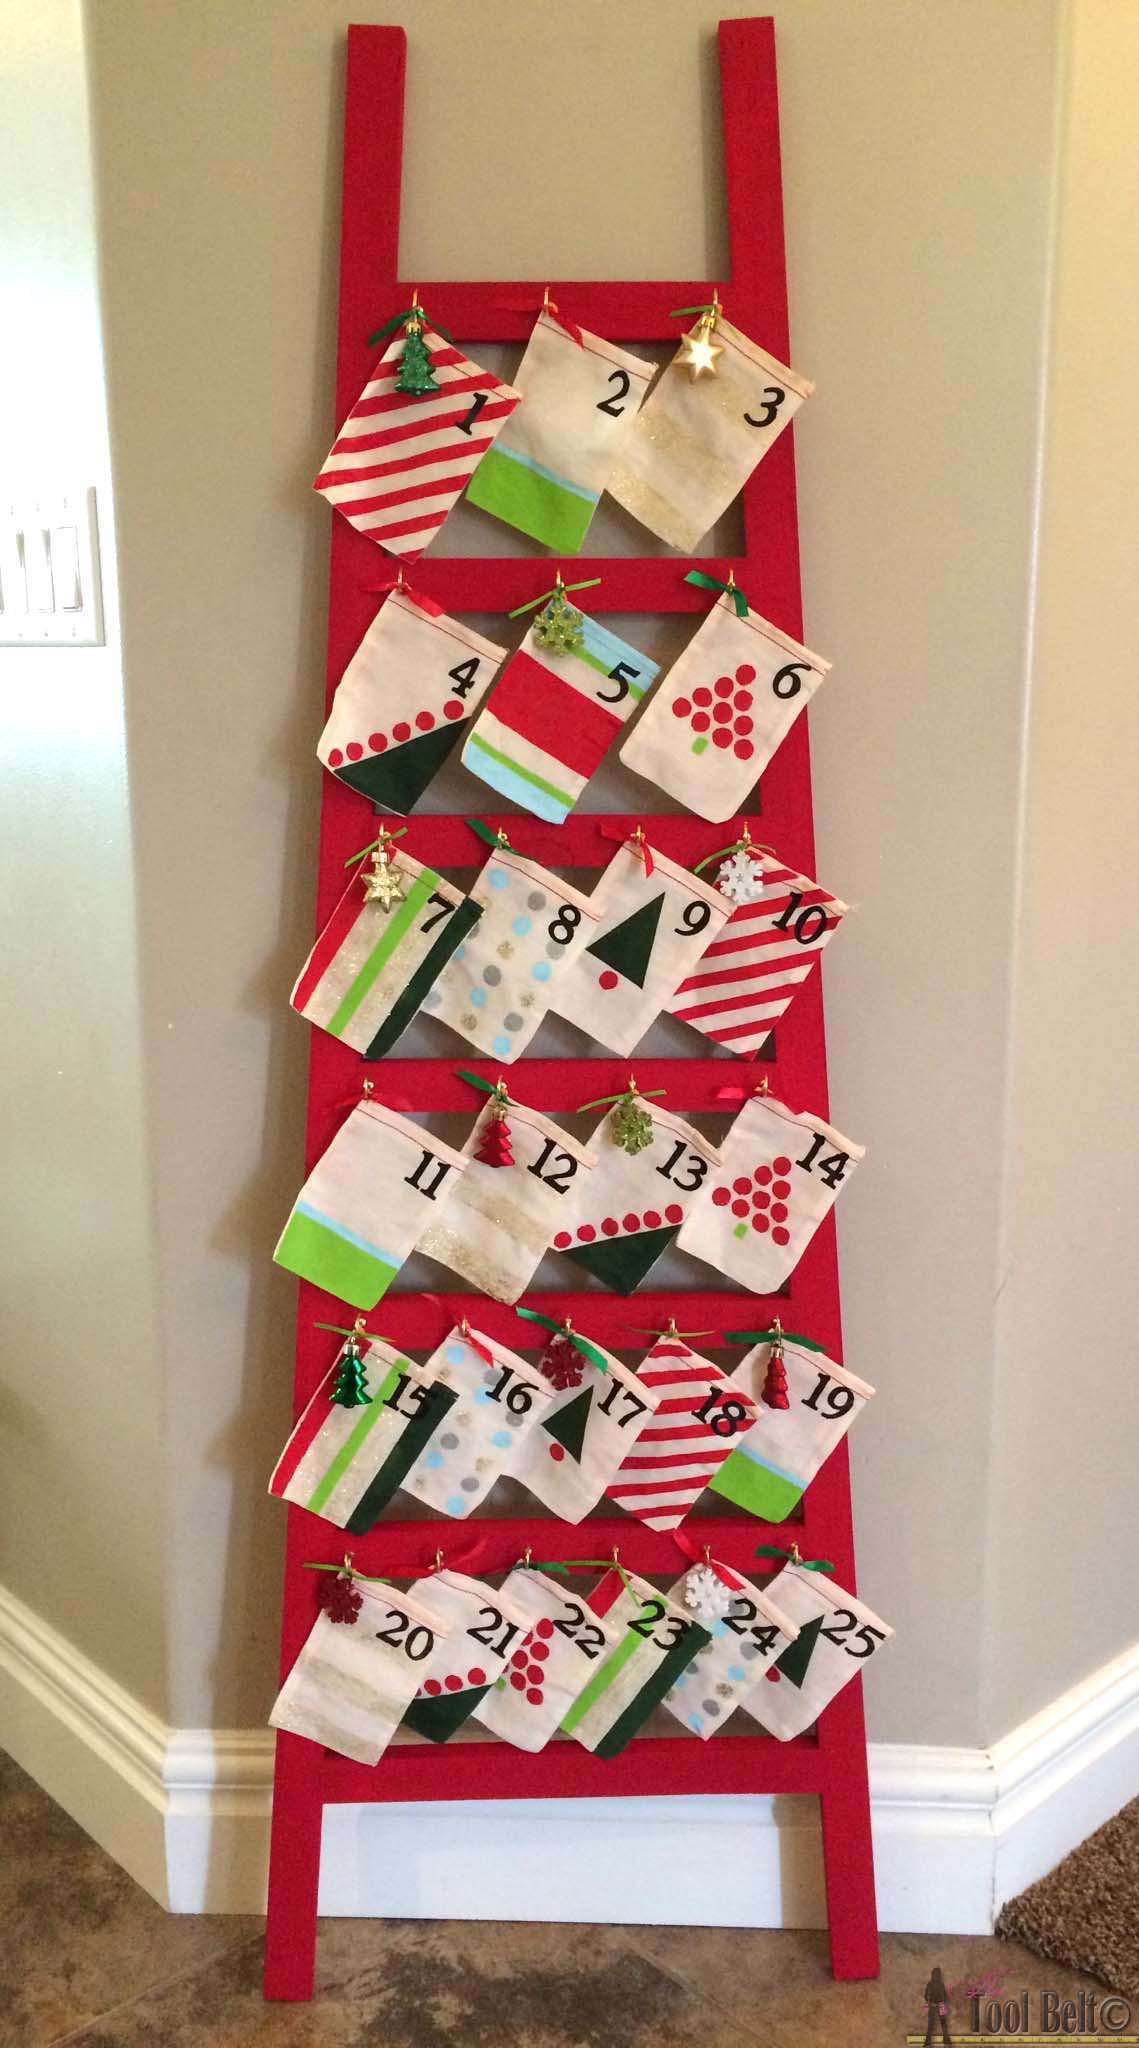 pottery calendar family barn tree holidays so these your get crafty one kids calendars for spirit holiday in seasonal fabric not advent countdown the of barns christmas decorating with